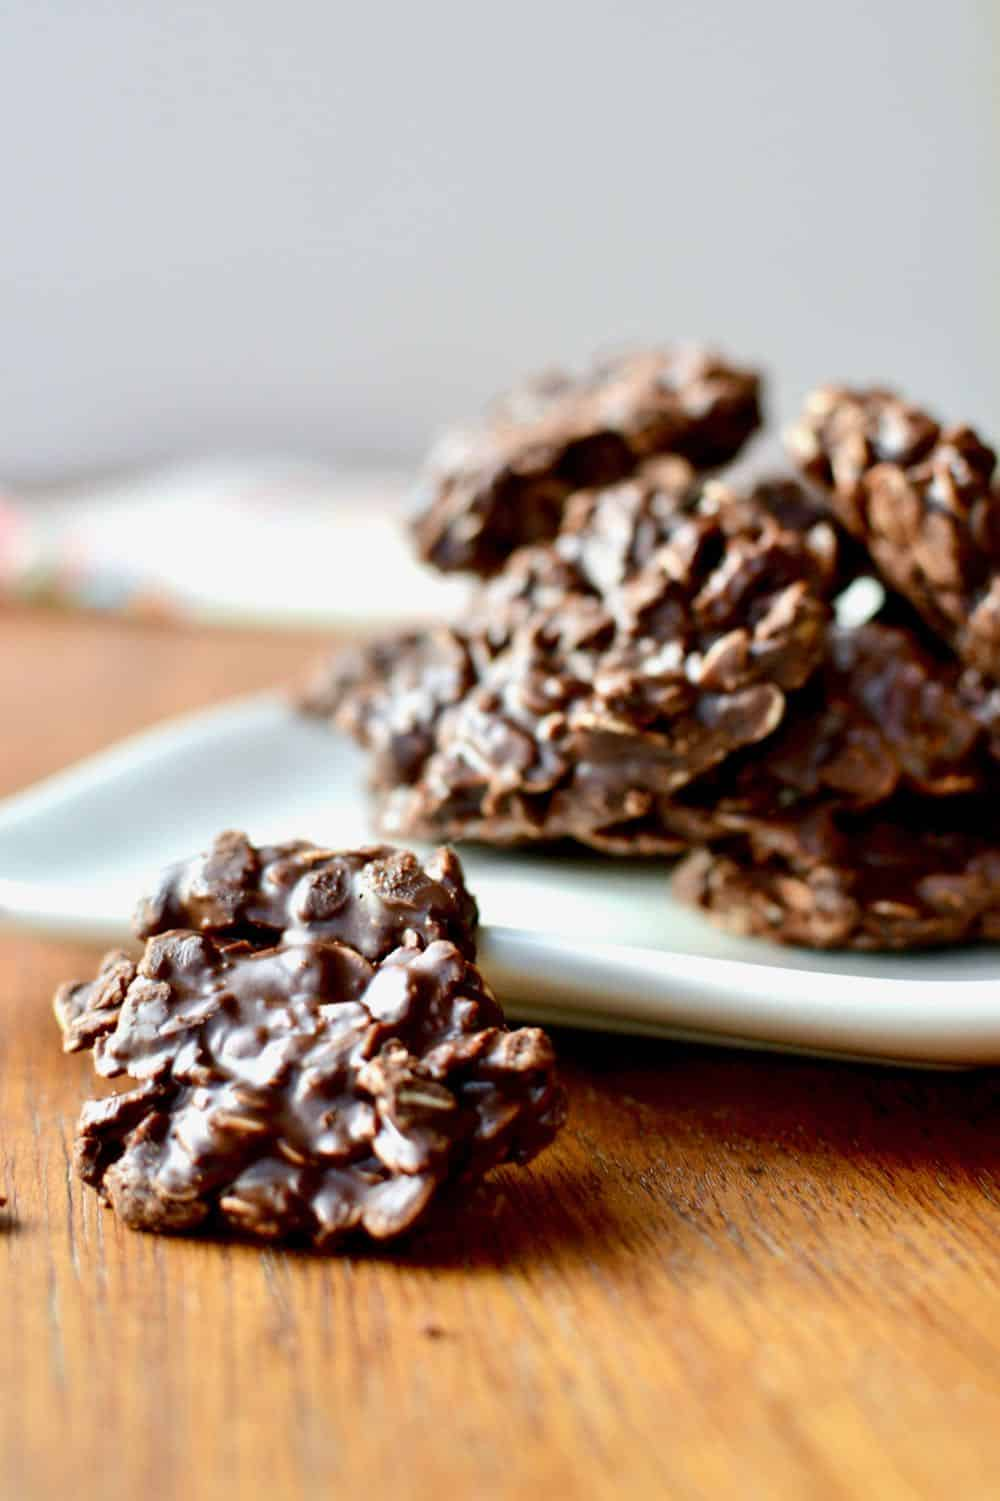 The oaty texture of the chocolate no bake cookie